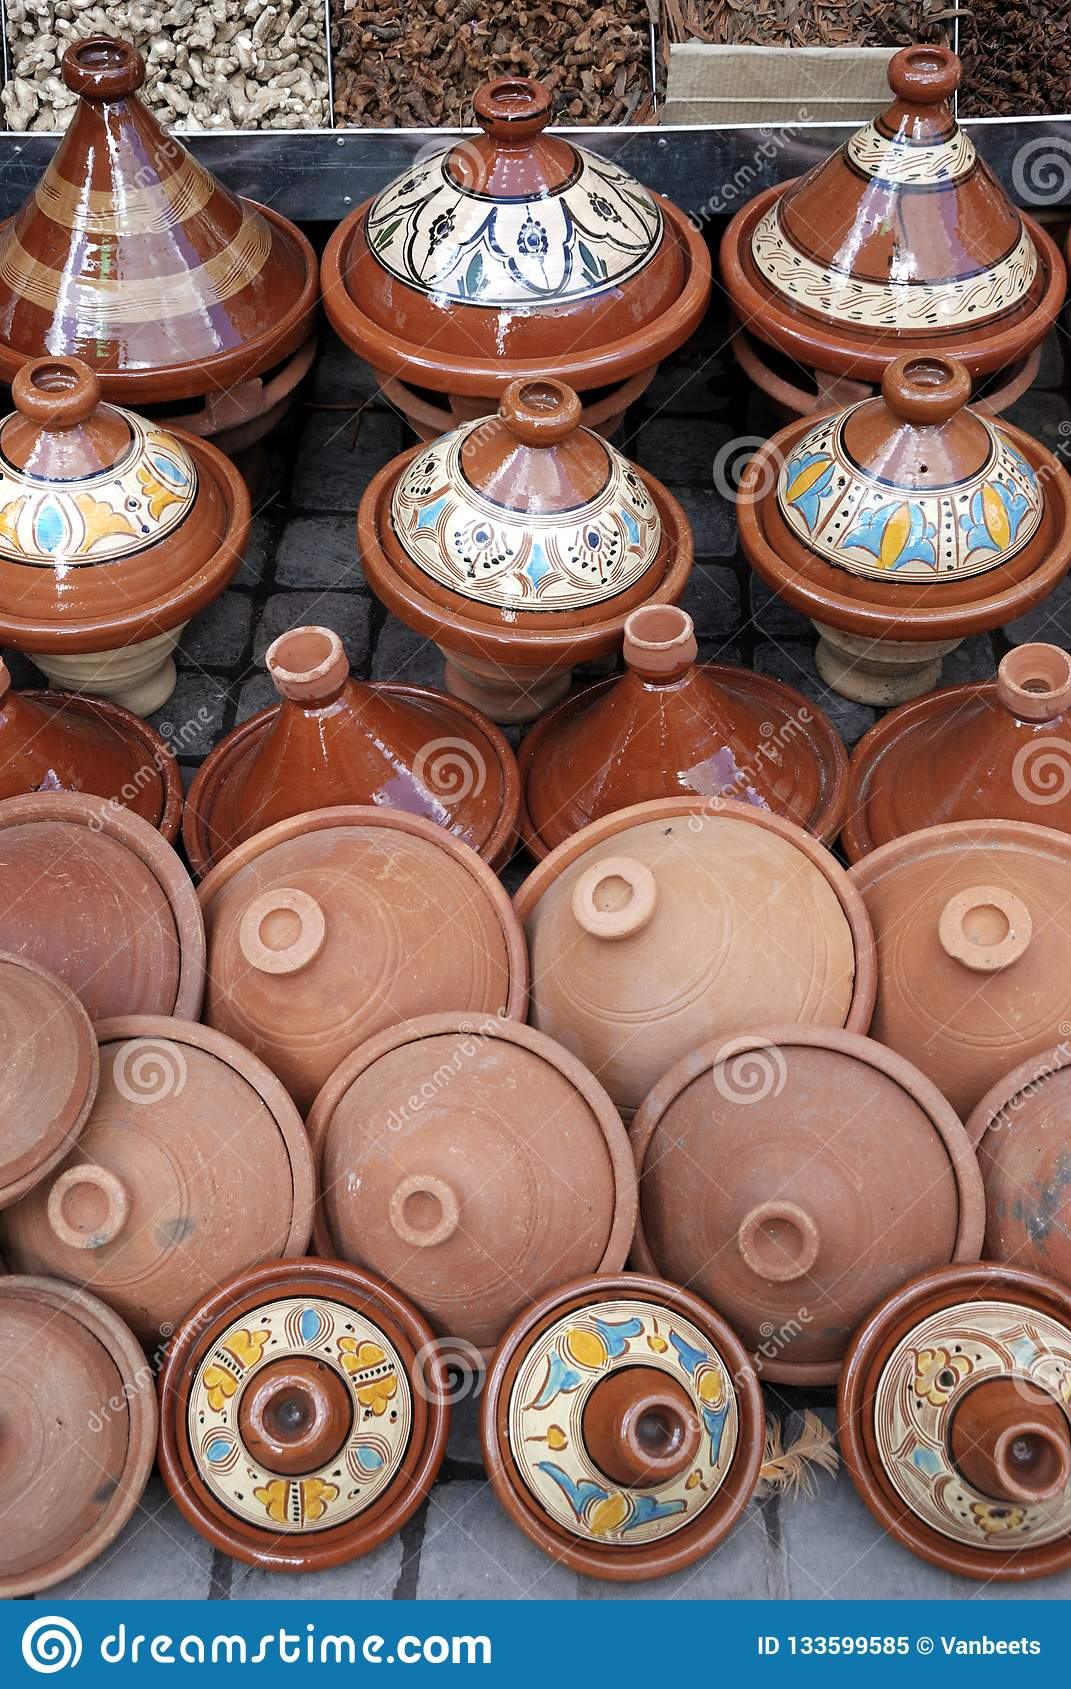 Earthenware Tajines And Bowls From Fez Stock Image - Image of ethnic ... aaa5135903c